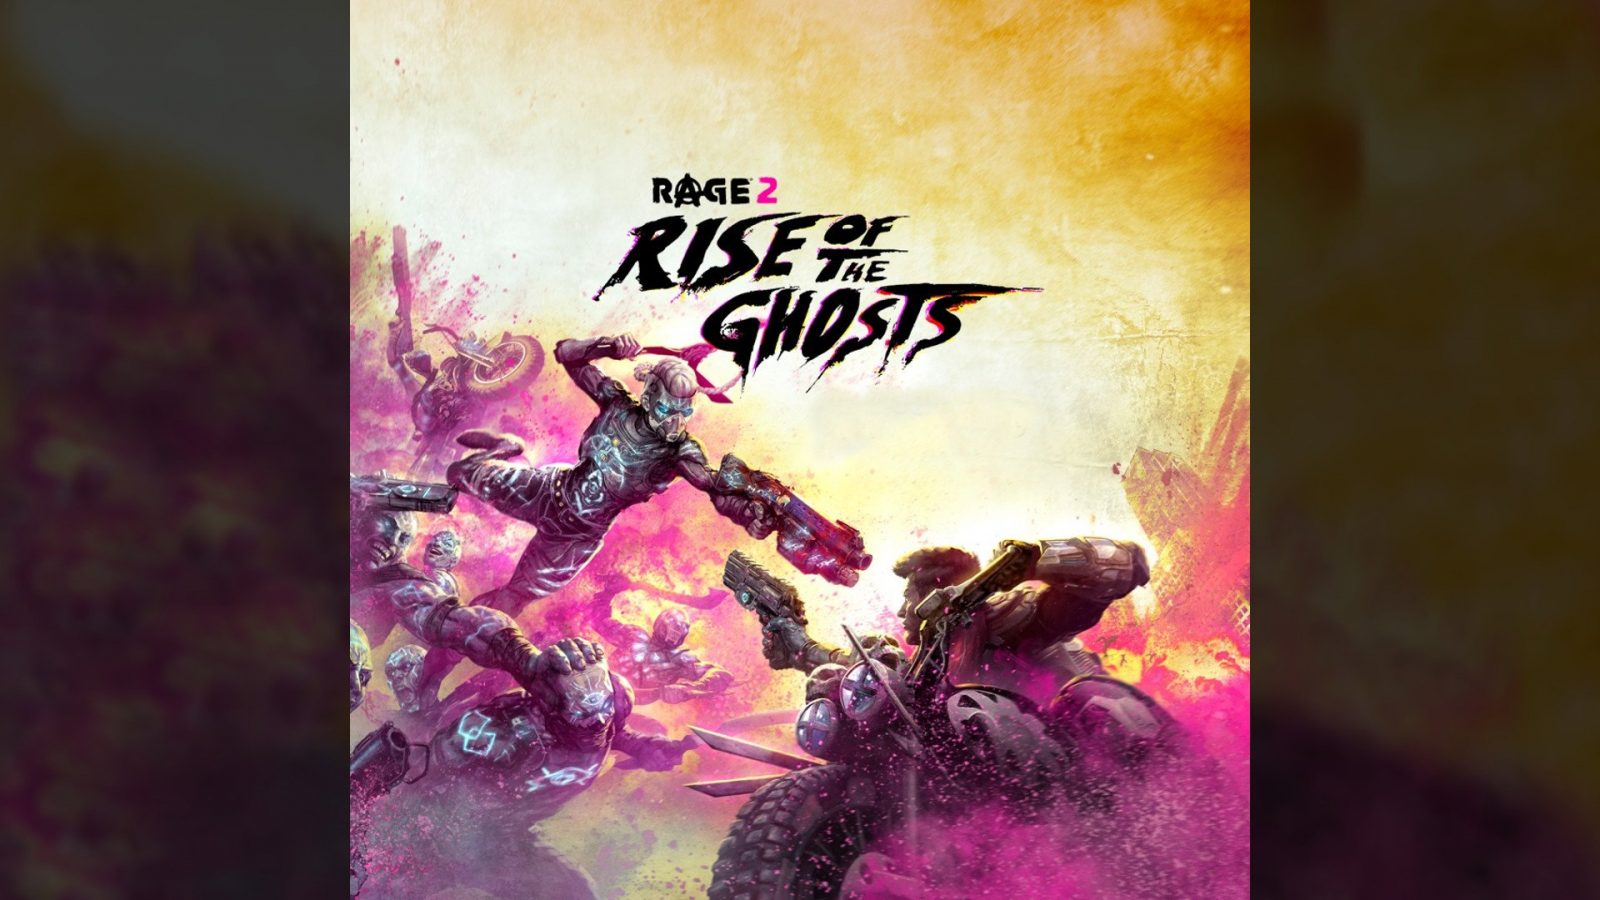 The First RAGE 2 Expansion Rise of the Ghosts Arrives September 2019